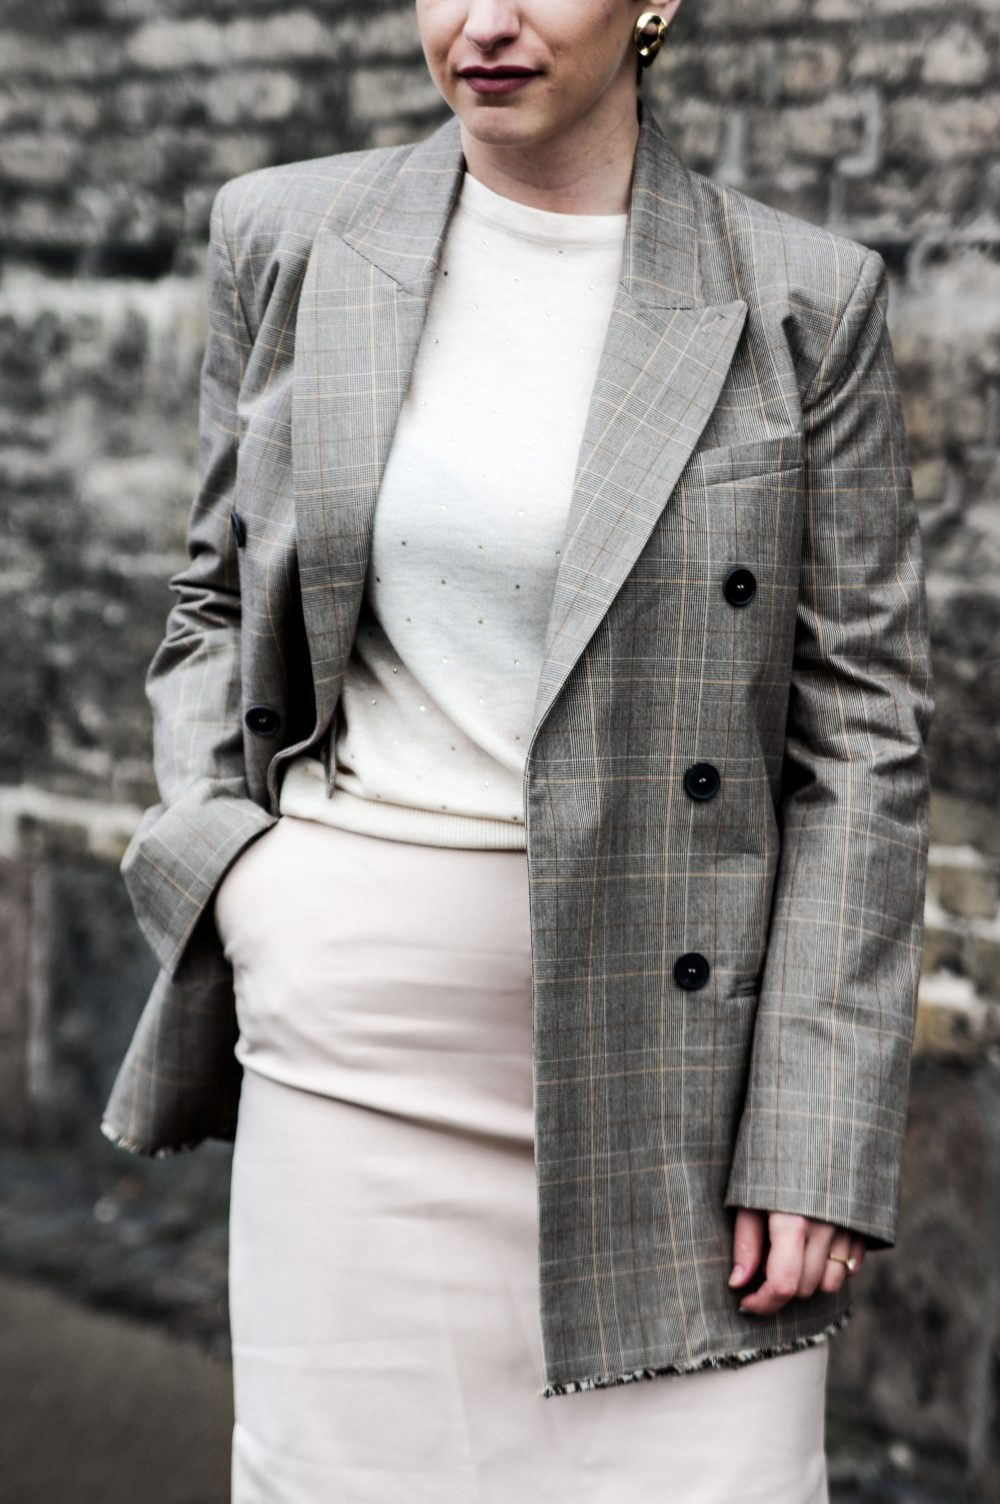 Structured women blazer, mango blazer, women blazer, work wear outfit, winter spring 2018 outfit, women fashion 2018 neutral winter outfit